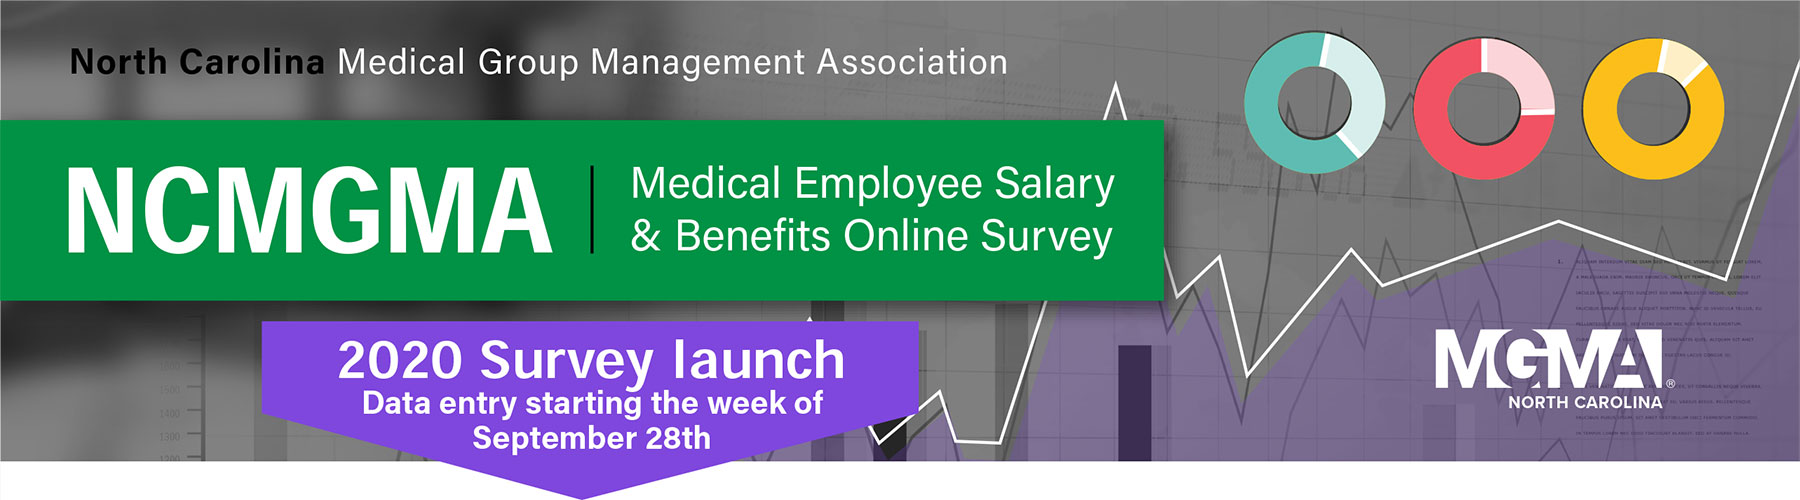 Salary and Benefits Survey Launches September 28th